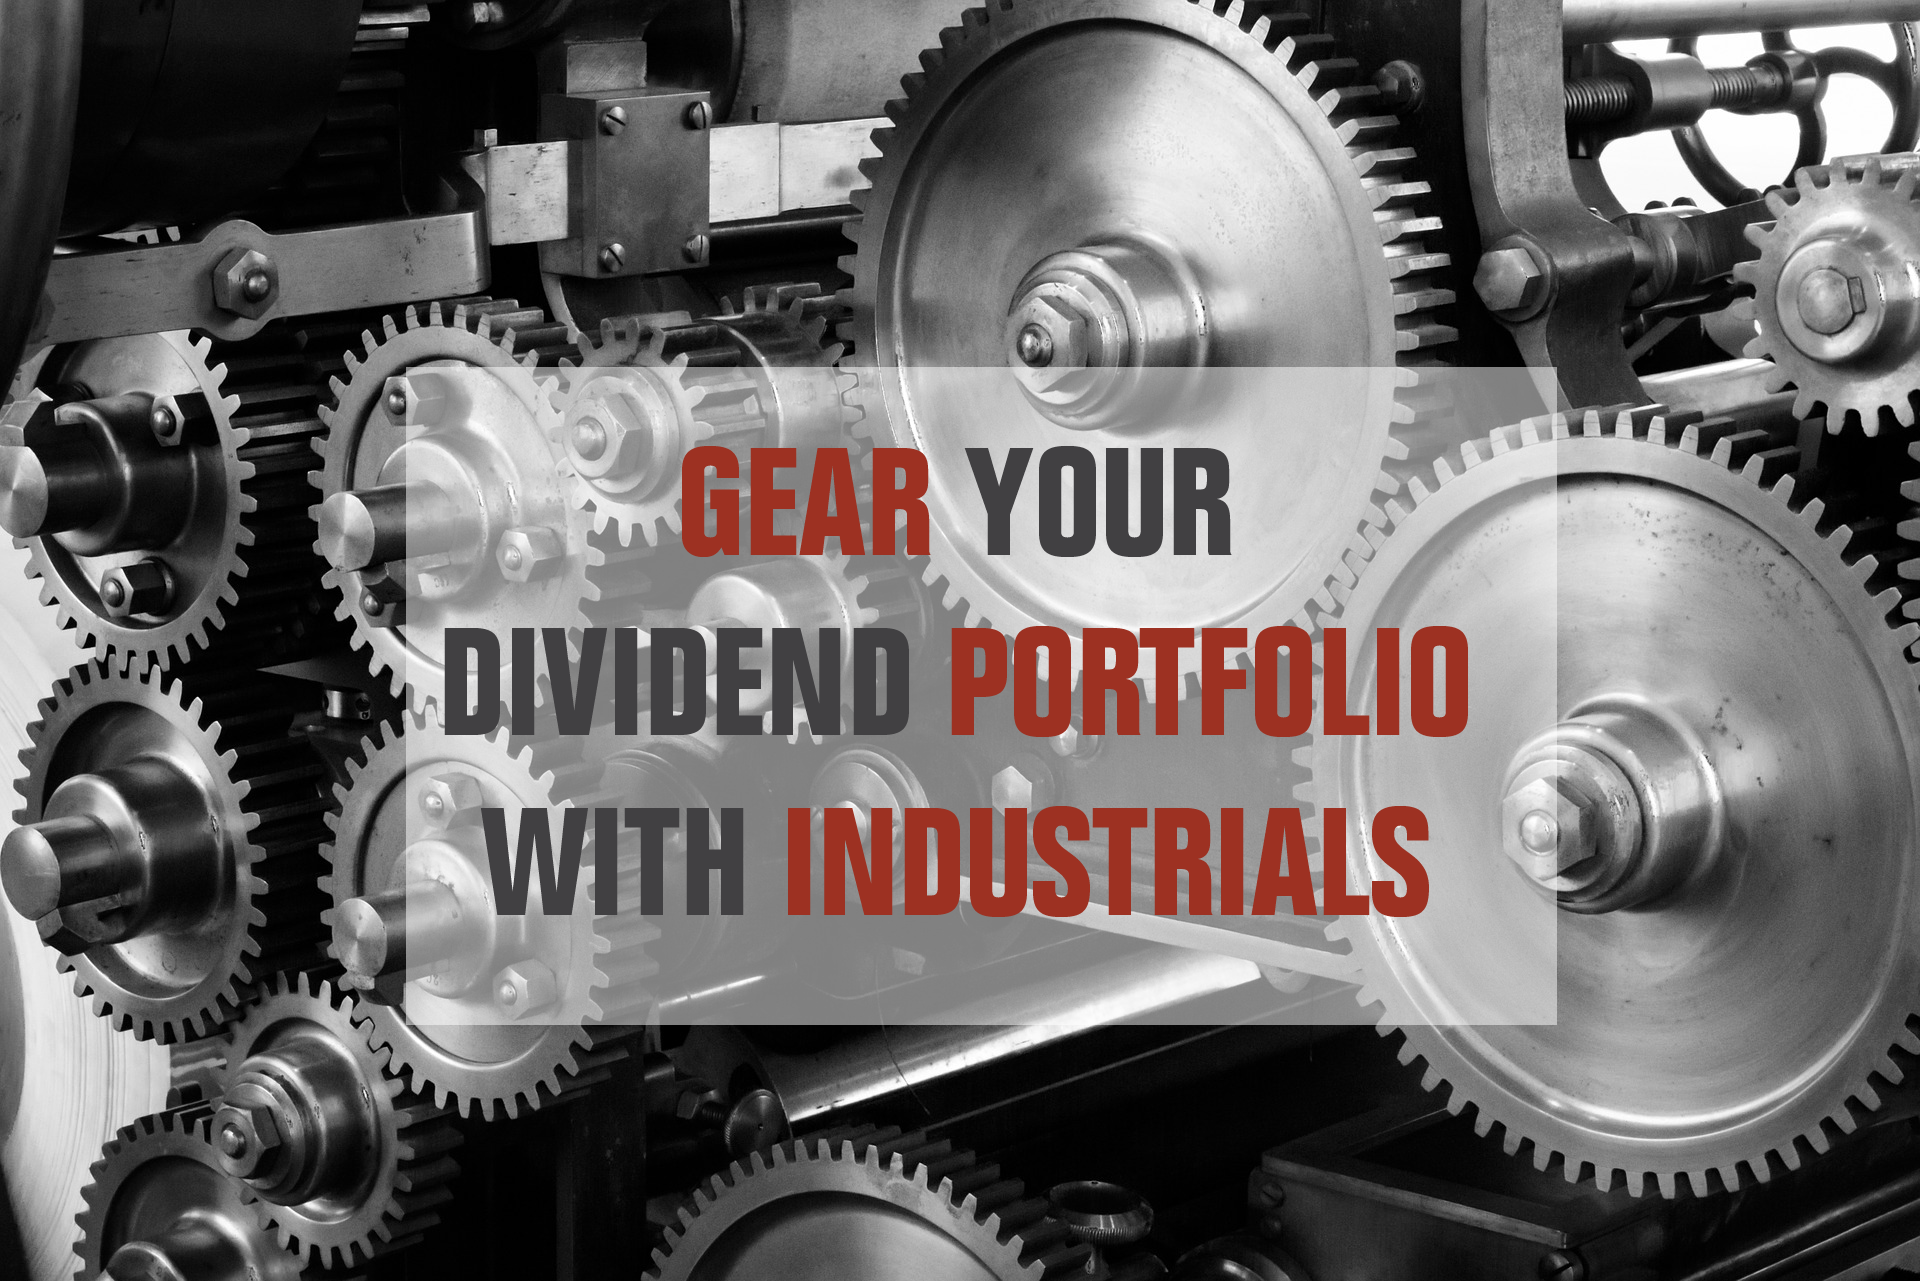 industrial dividend stocks list